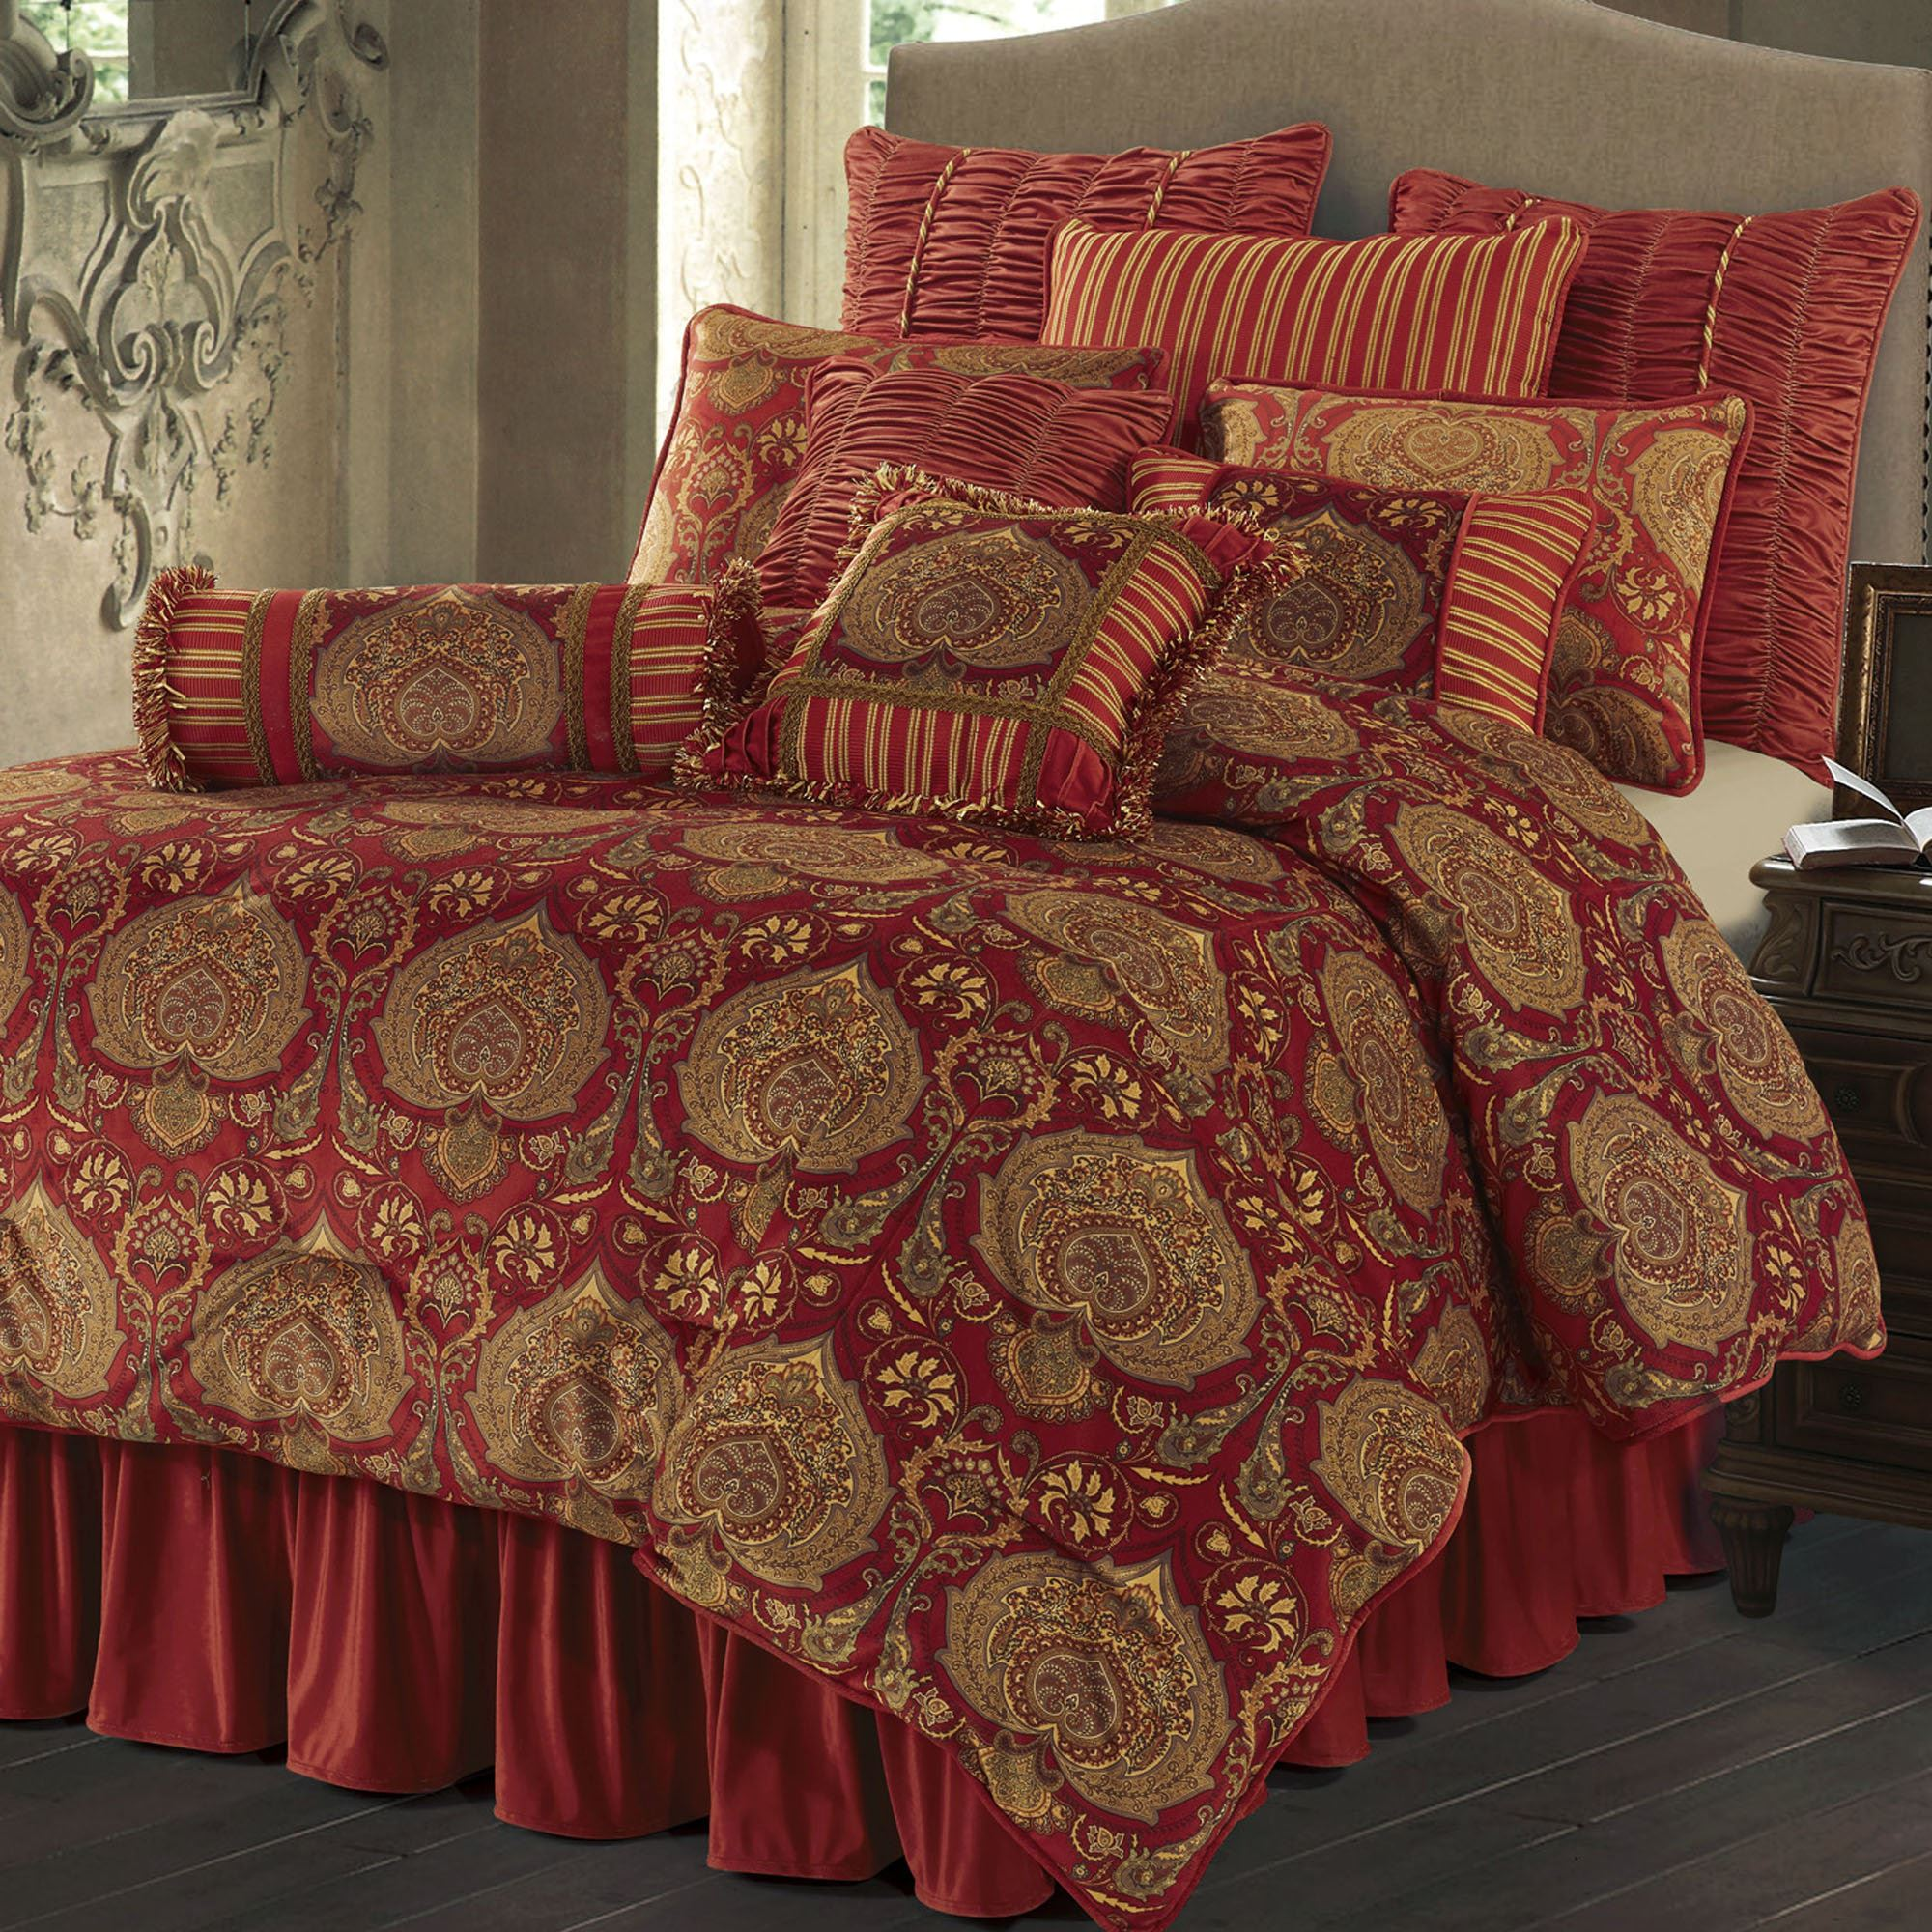 comforter gardens com grey set walmart orange king homes piece and better ip sets bedding medallion